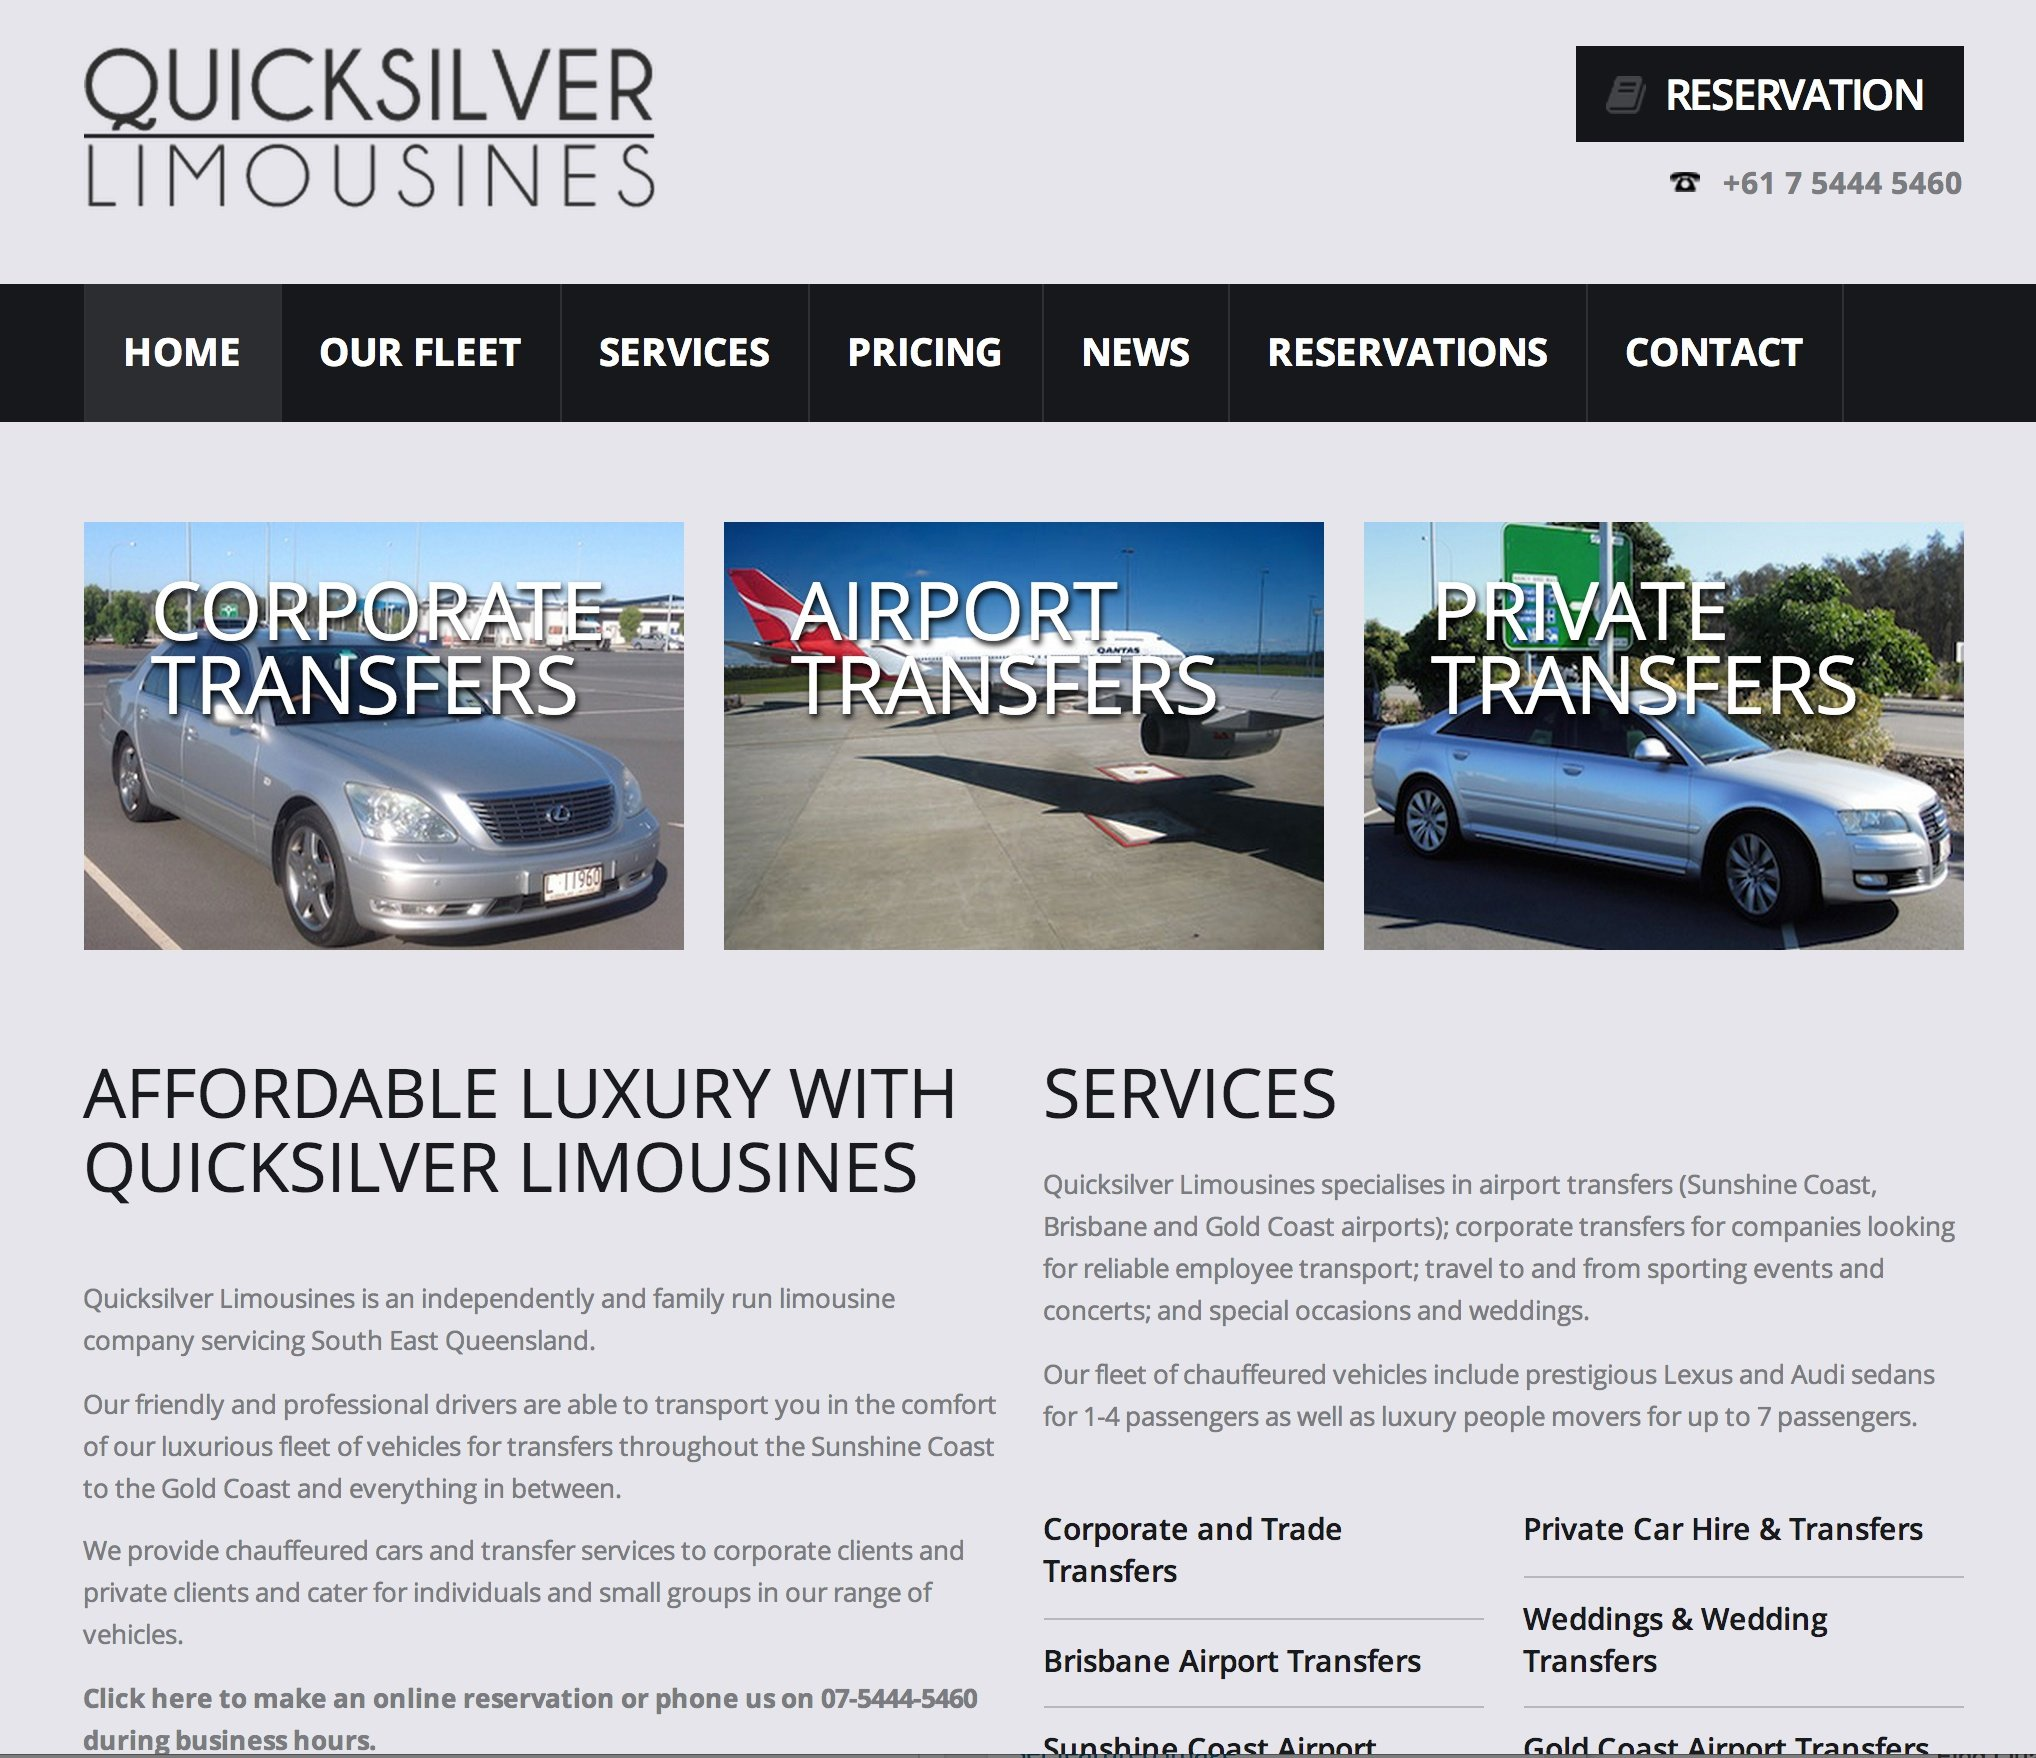 Quicksilver Limousines - before